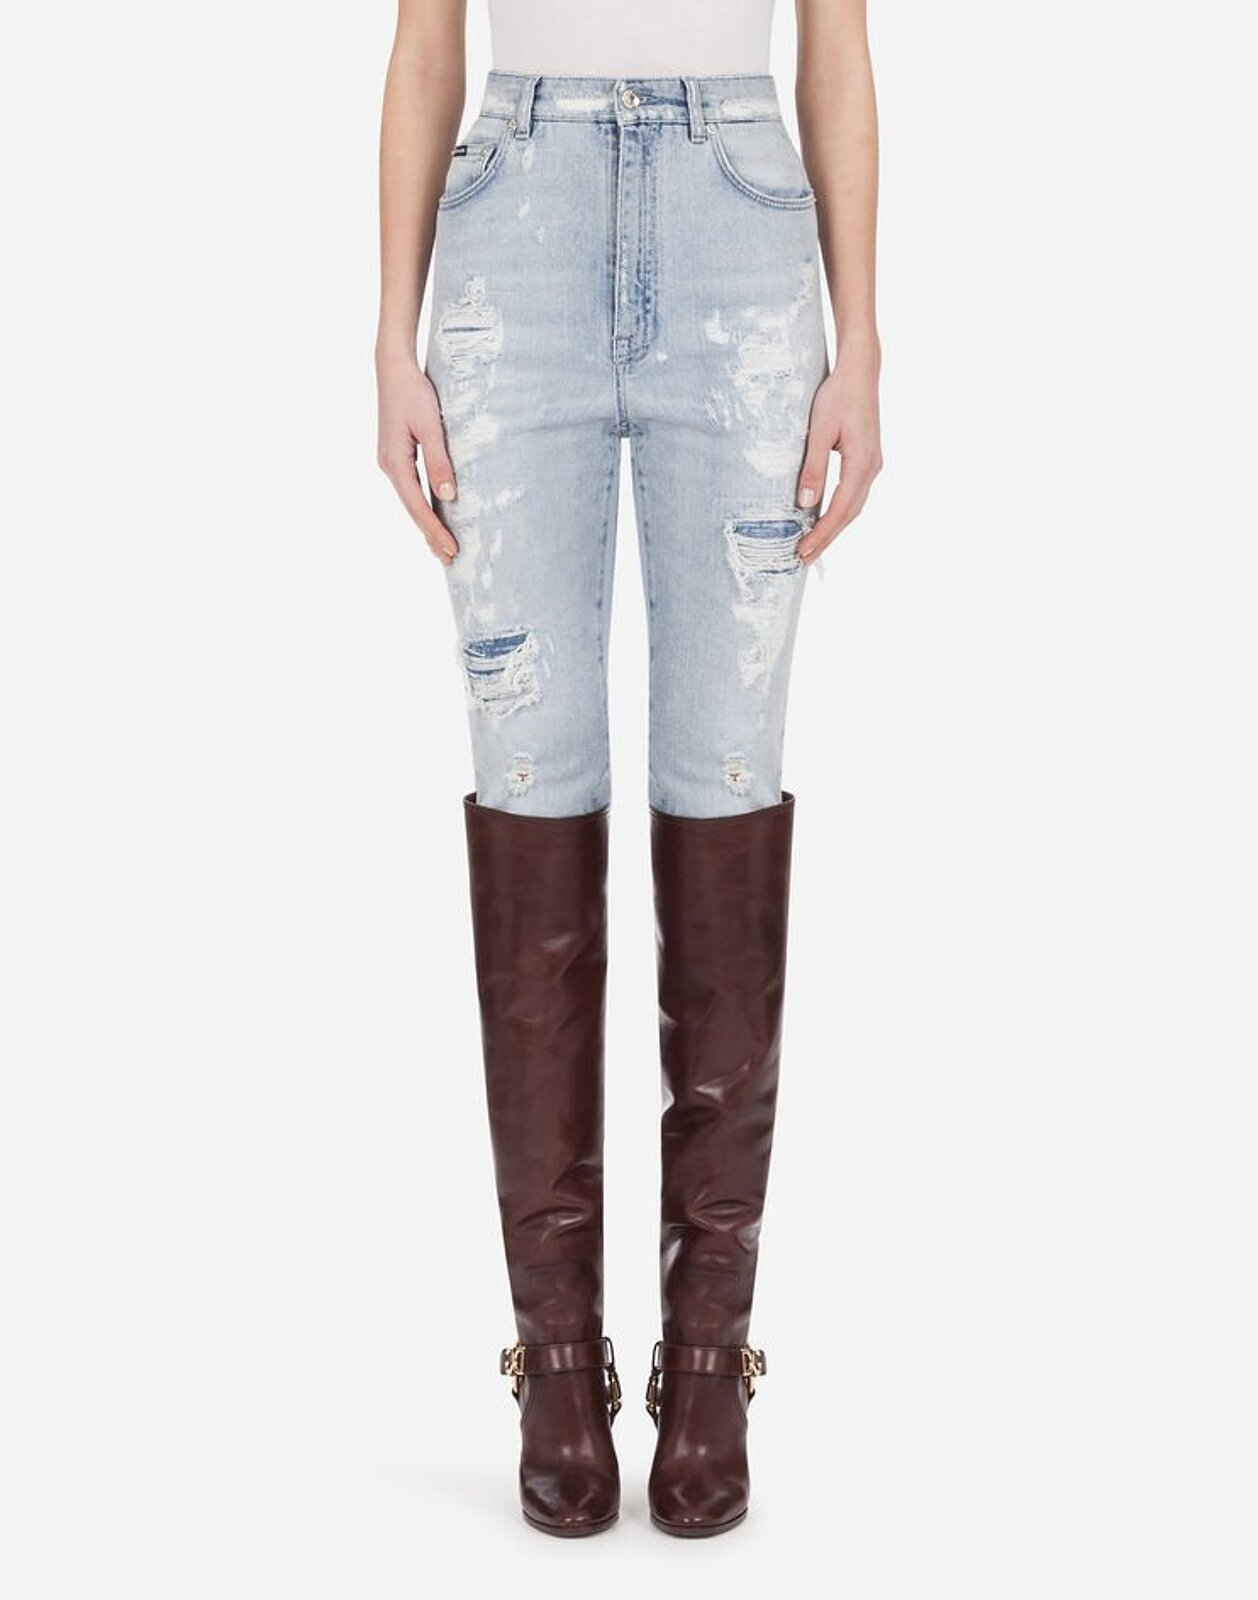 Jeans Audrey In Denim Light Blue Con Rotture - Dolce & Gabbana